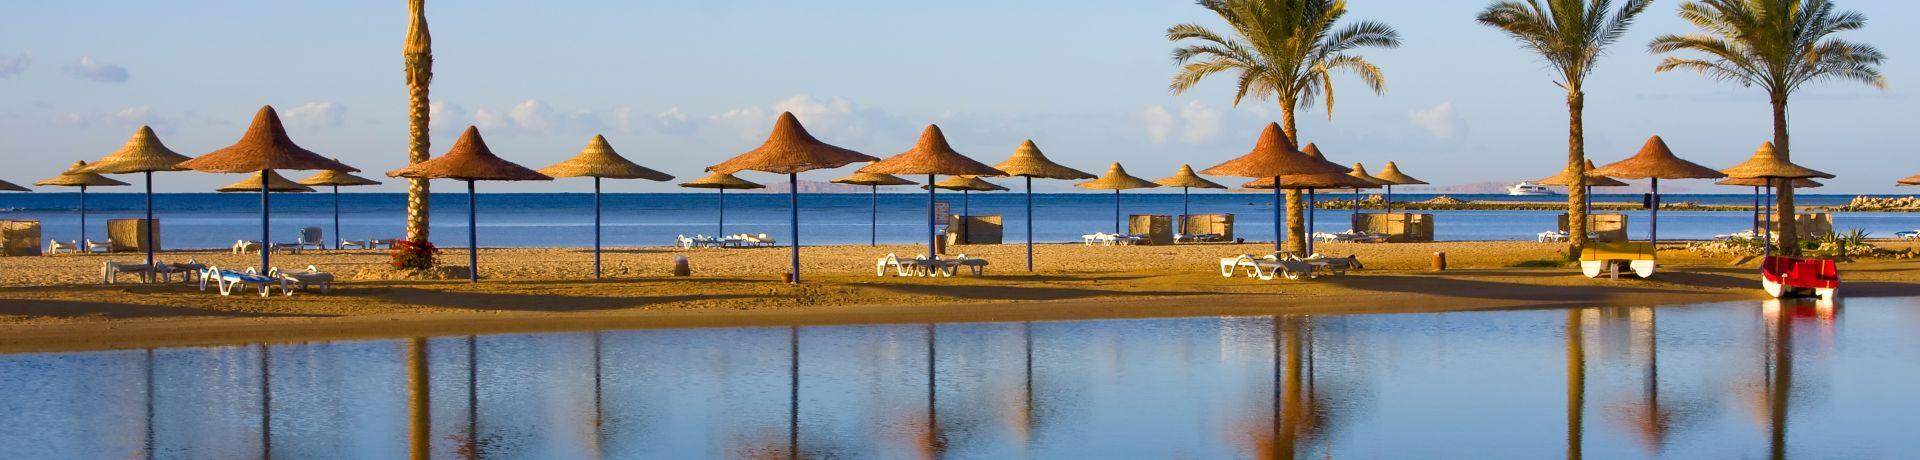 country-id-11-aegypten-hurghada-safaga_IS_20510209_F1920x460.jpg